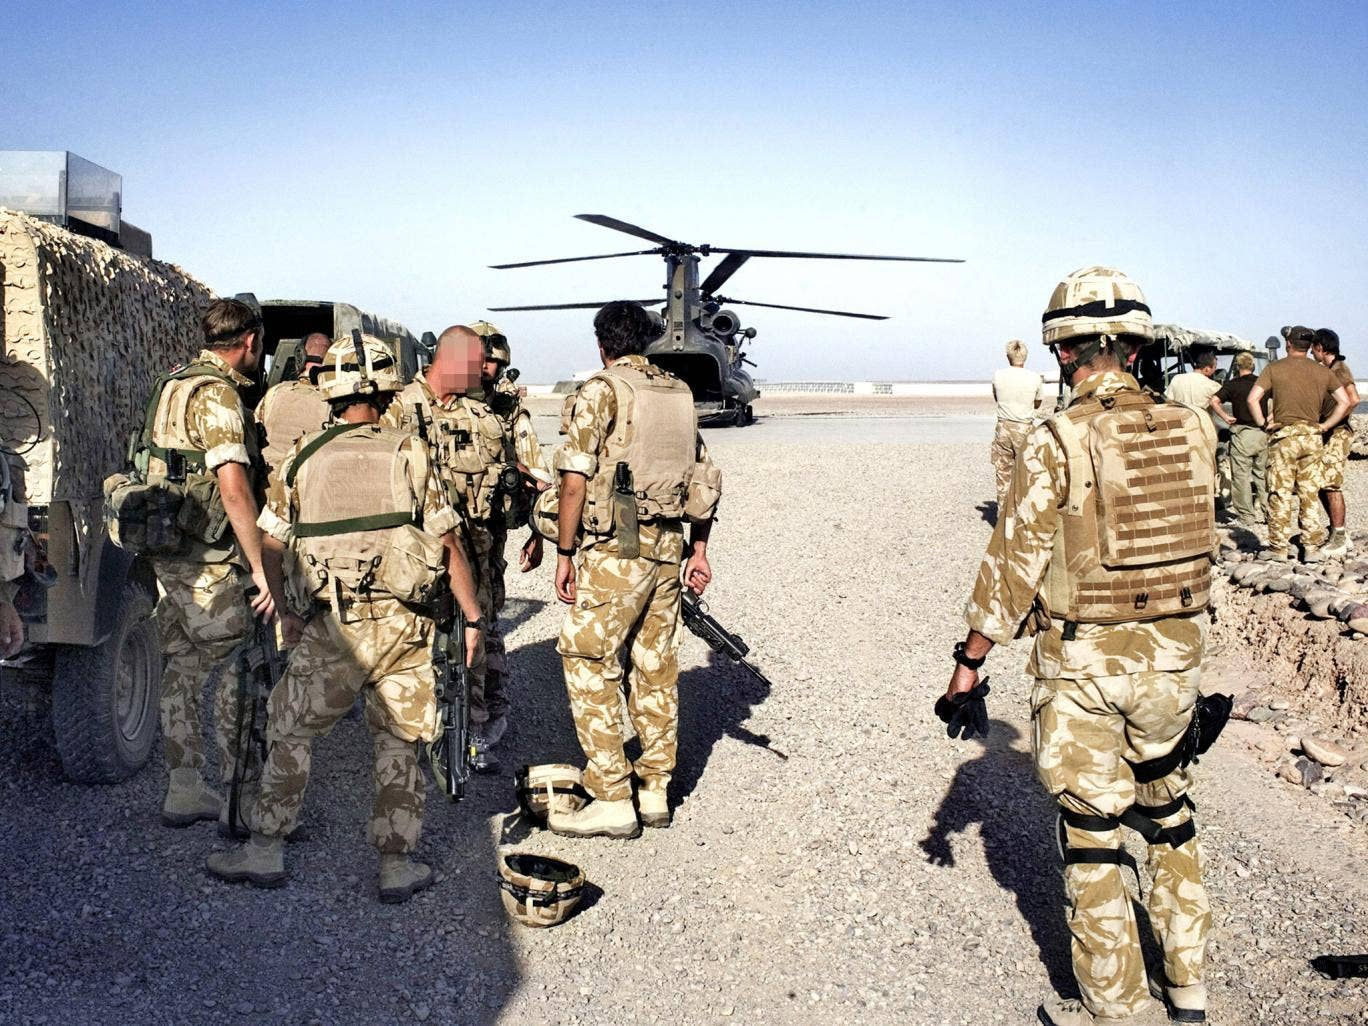 British troops on duty in Afghanistan